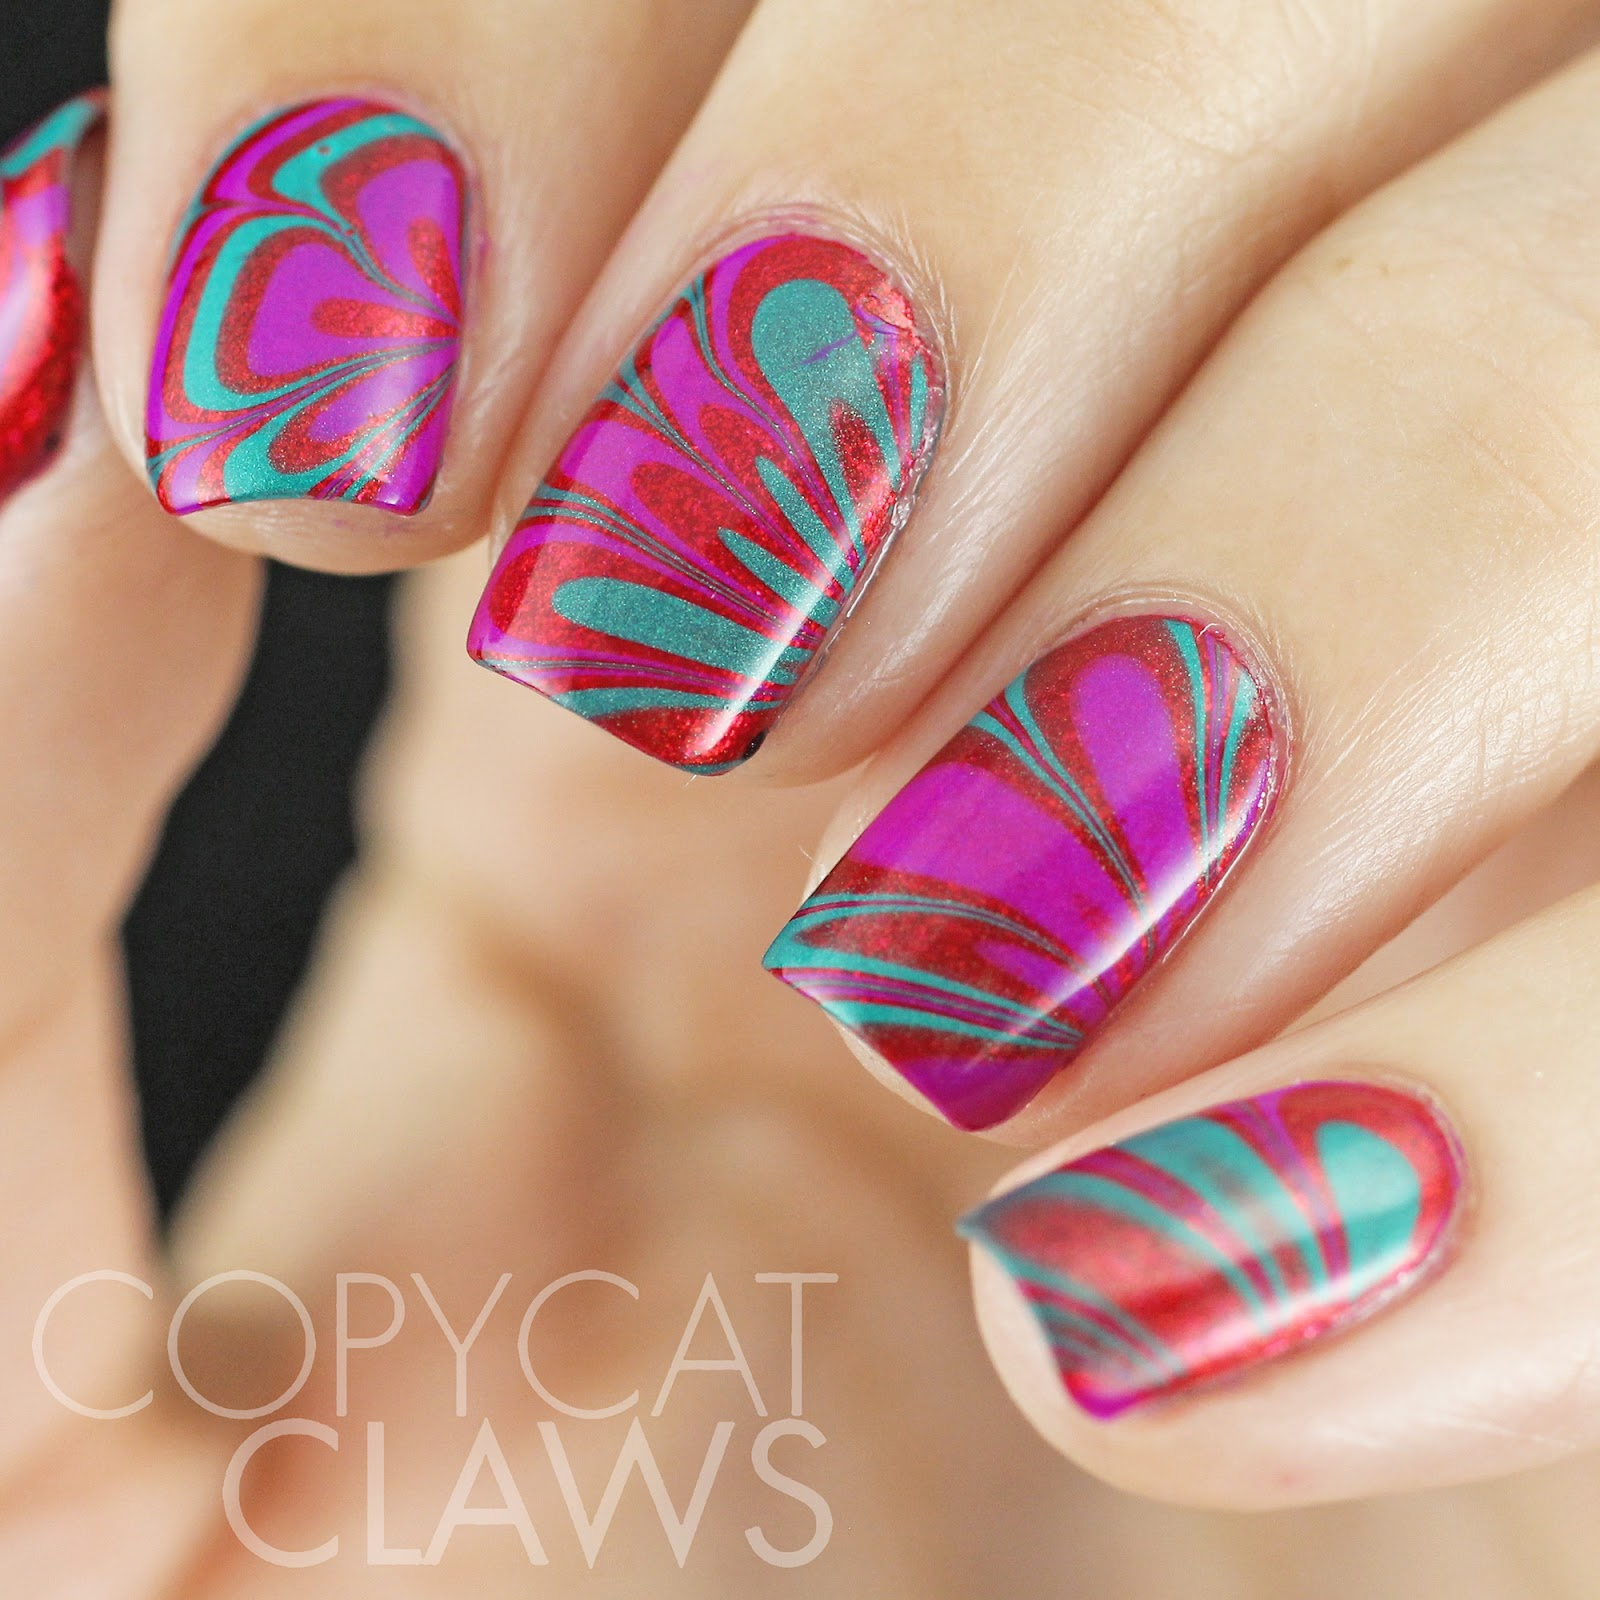 Copycat Claws: Red, Purple and Aqua Negative Space Water Marble Nails